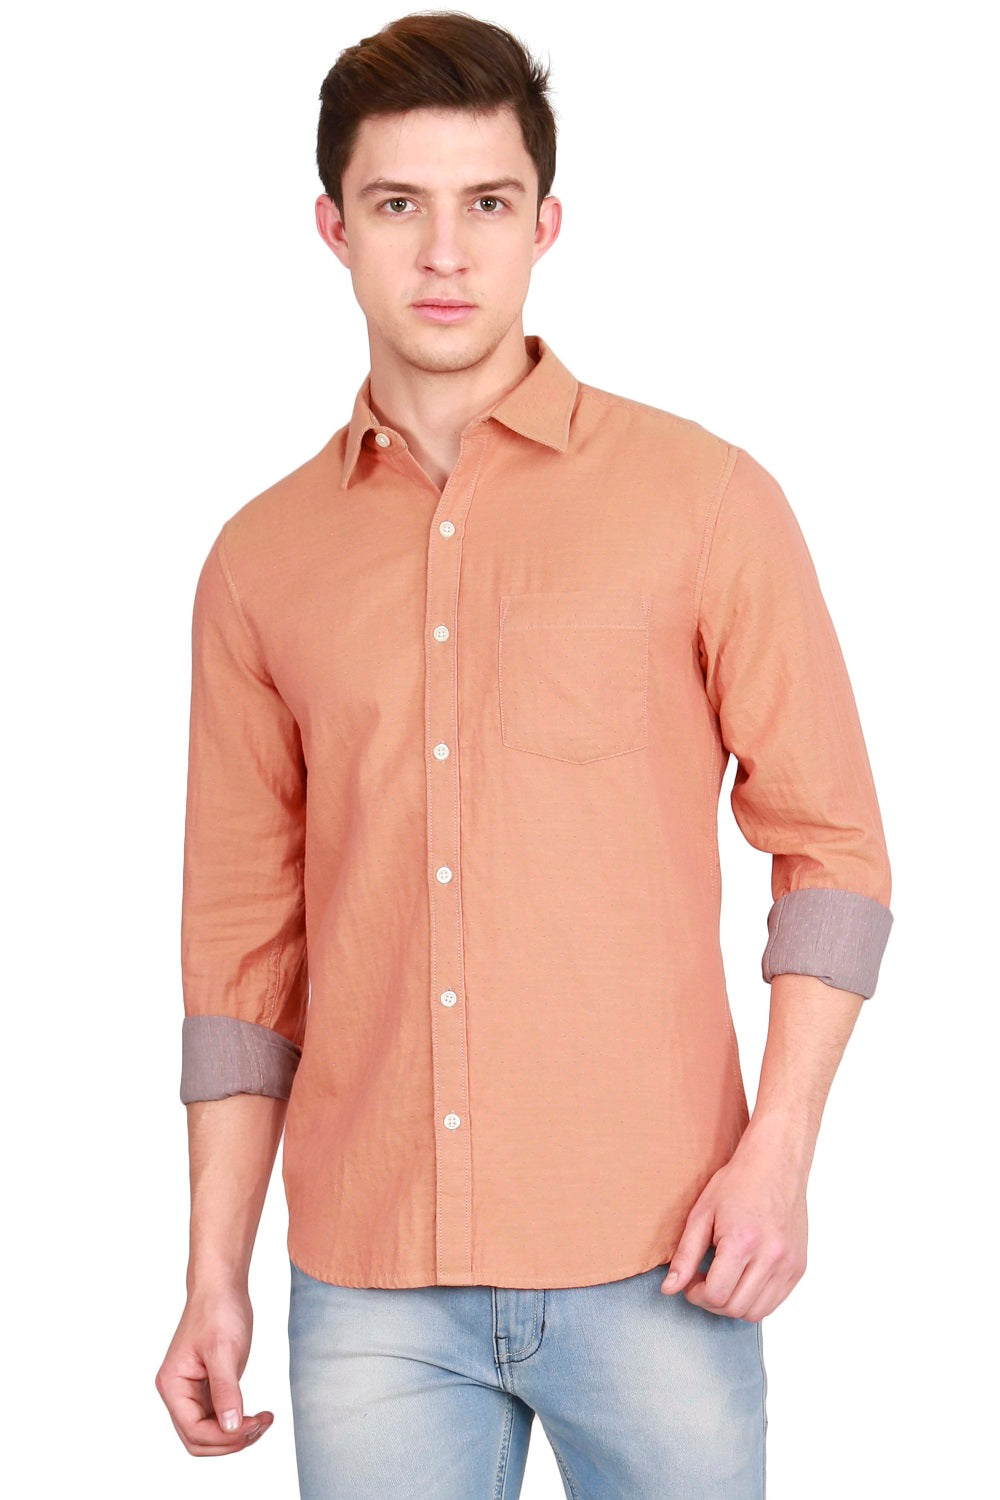 IMYOUNG Men's solid Orange Slim Fit Casual Shirt